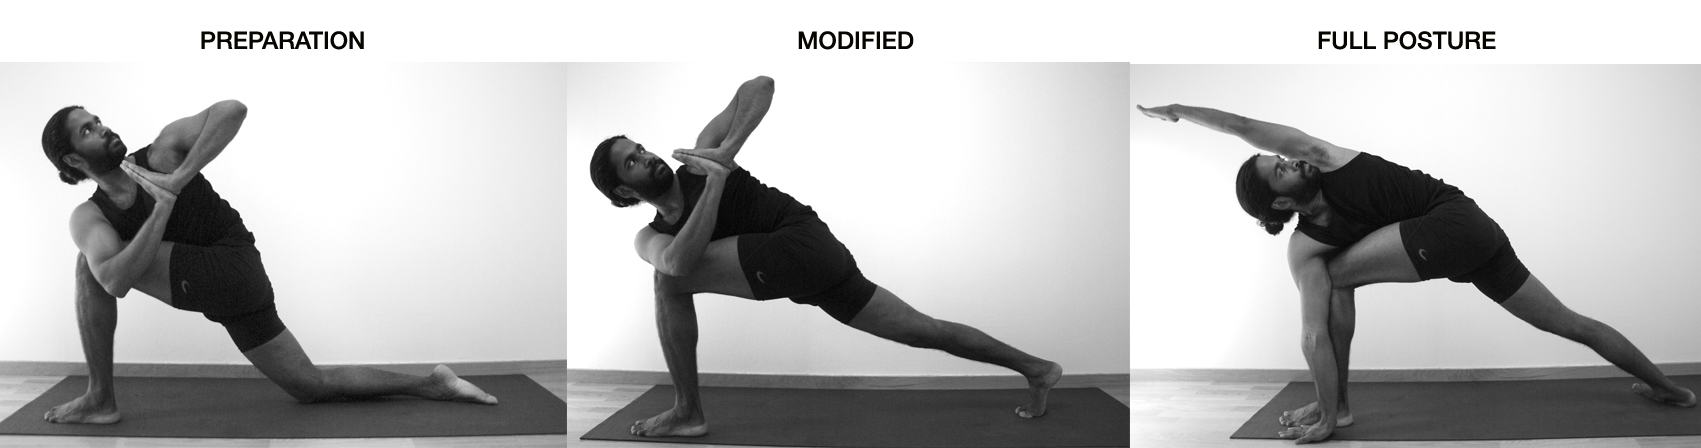 p-parsvakonasana-buildup